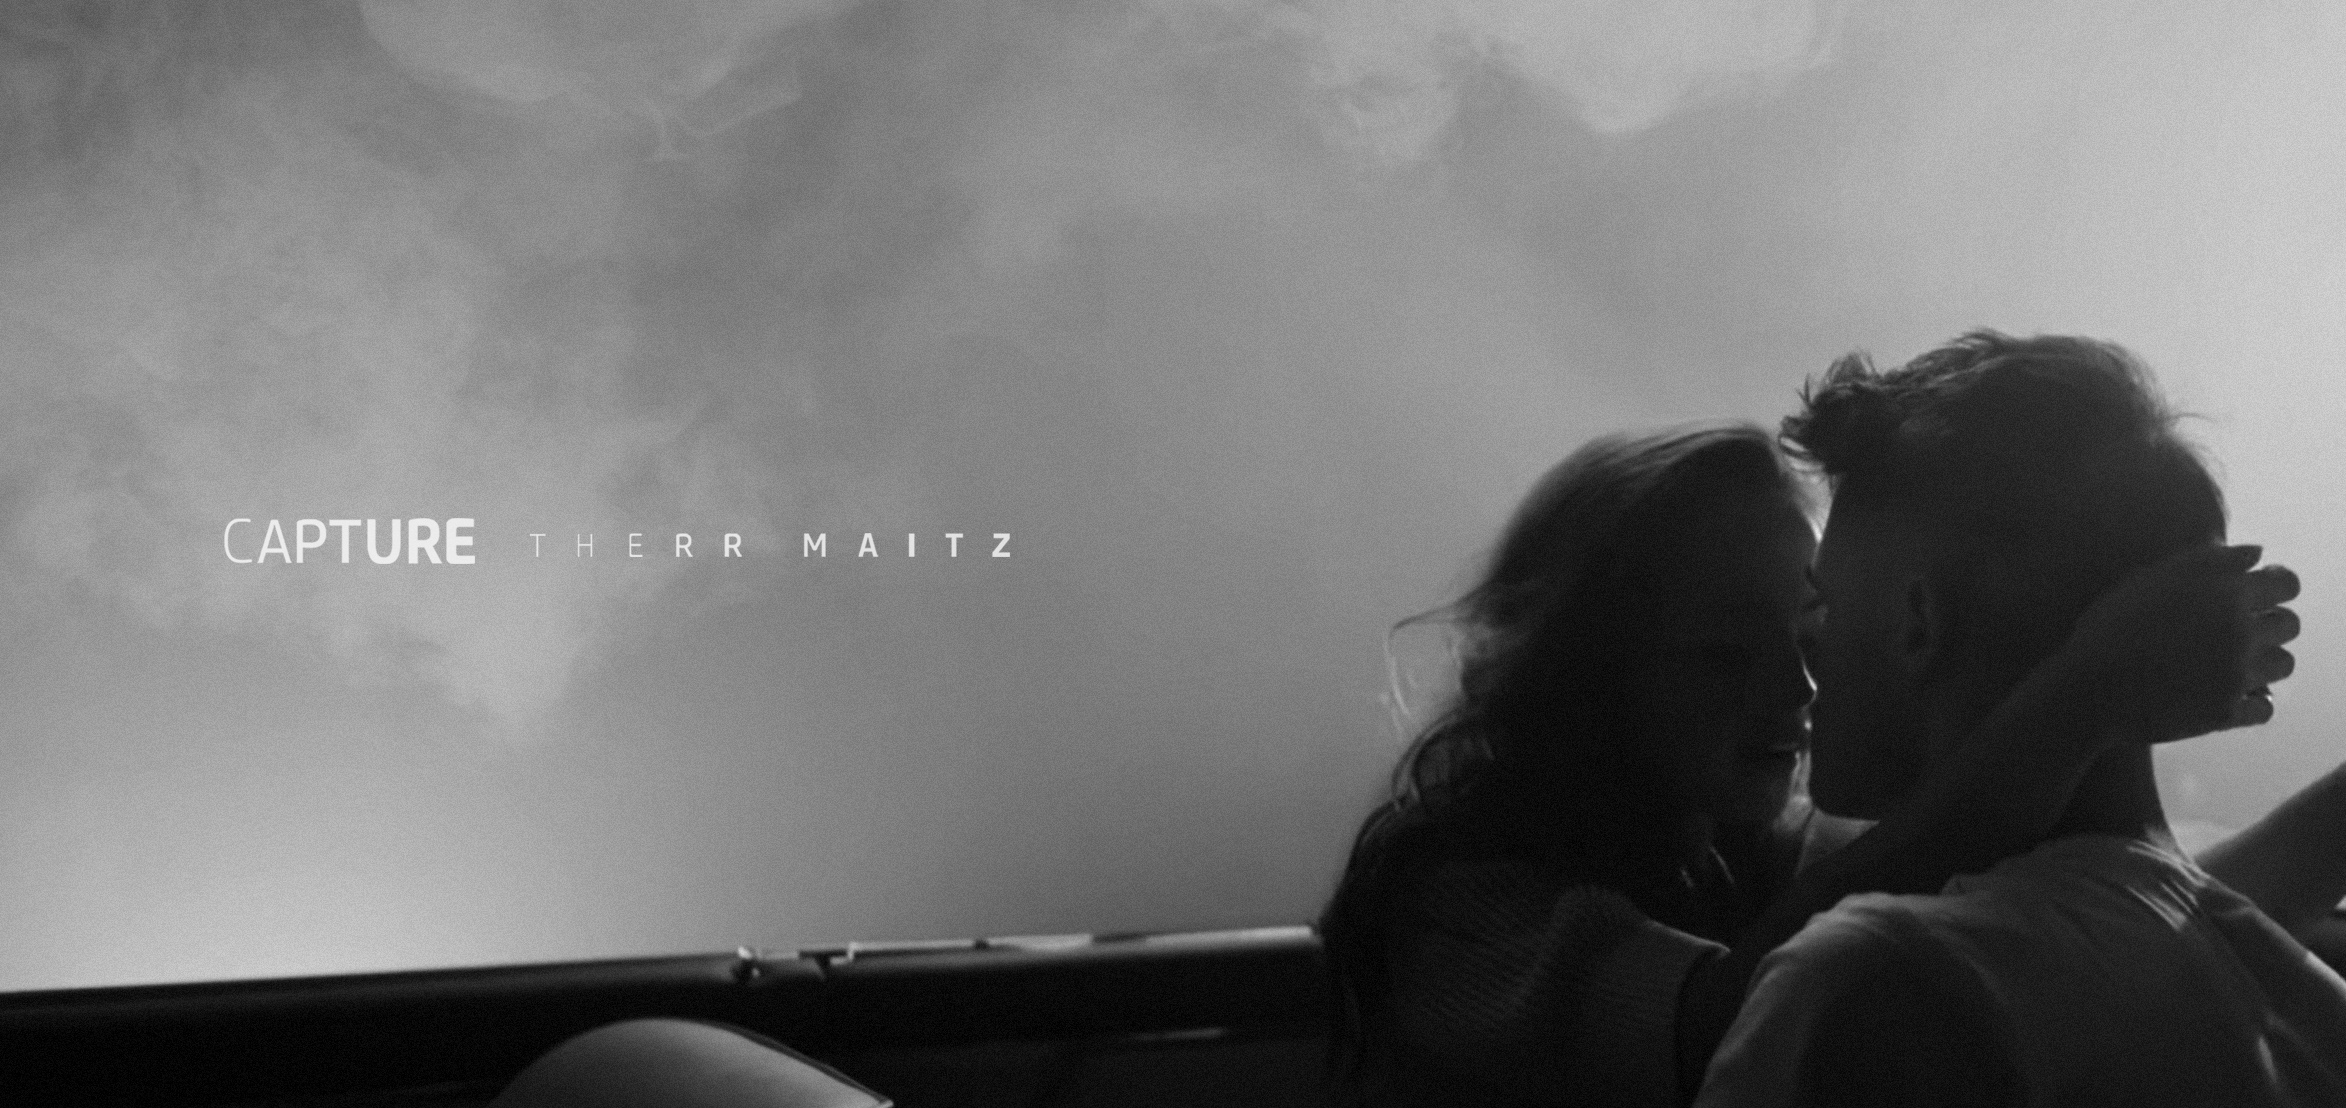 Brand identity and art direction of the music video, by Color.zone creative agency for the Container single, by Therr Maitz.